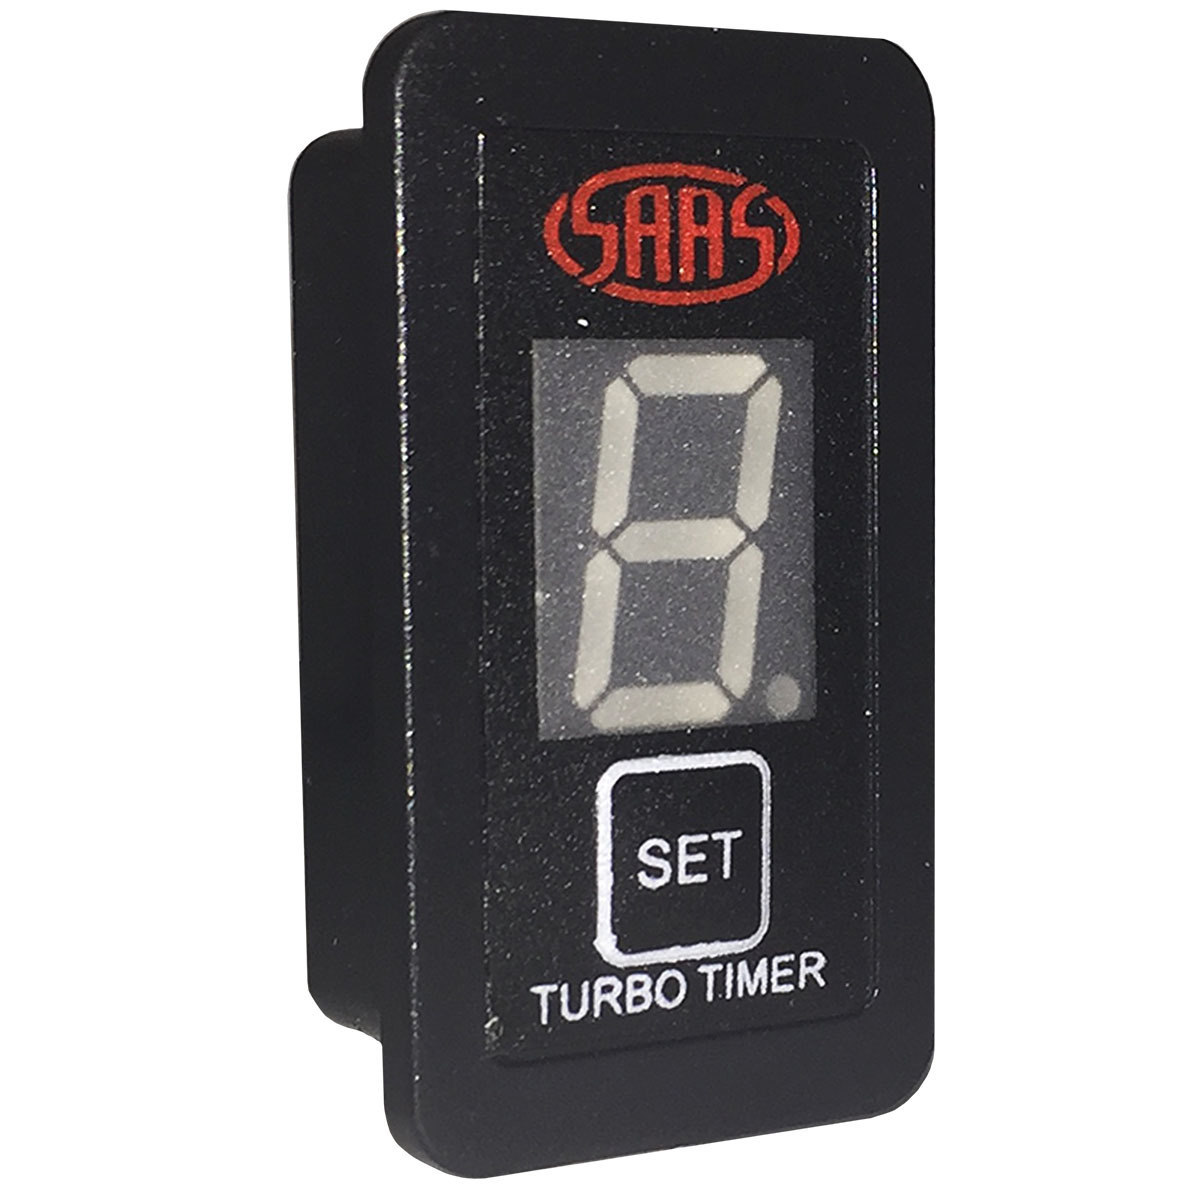 Turbo Timer Digital Switch Gauge Auto Carling 49 x 23